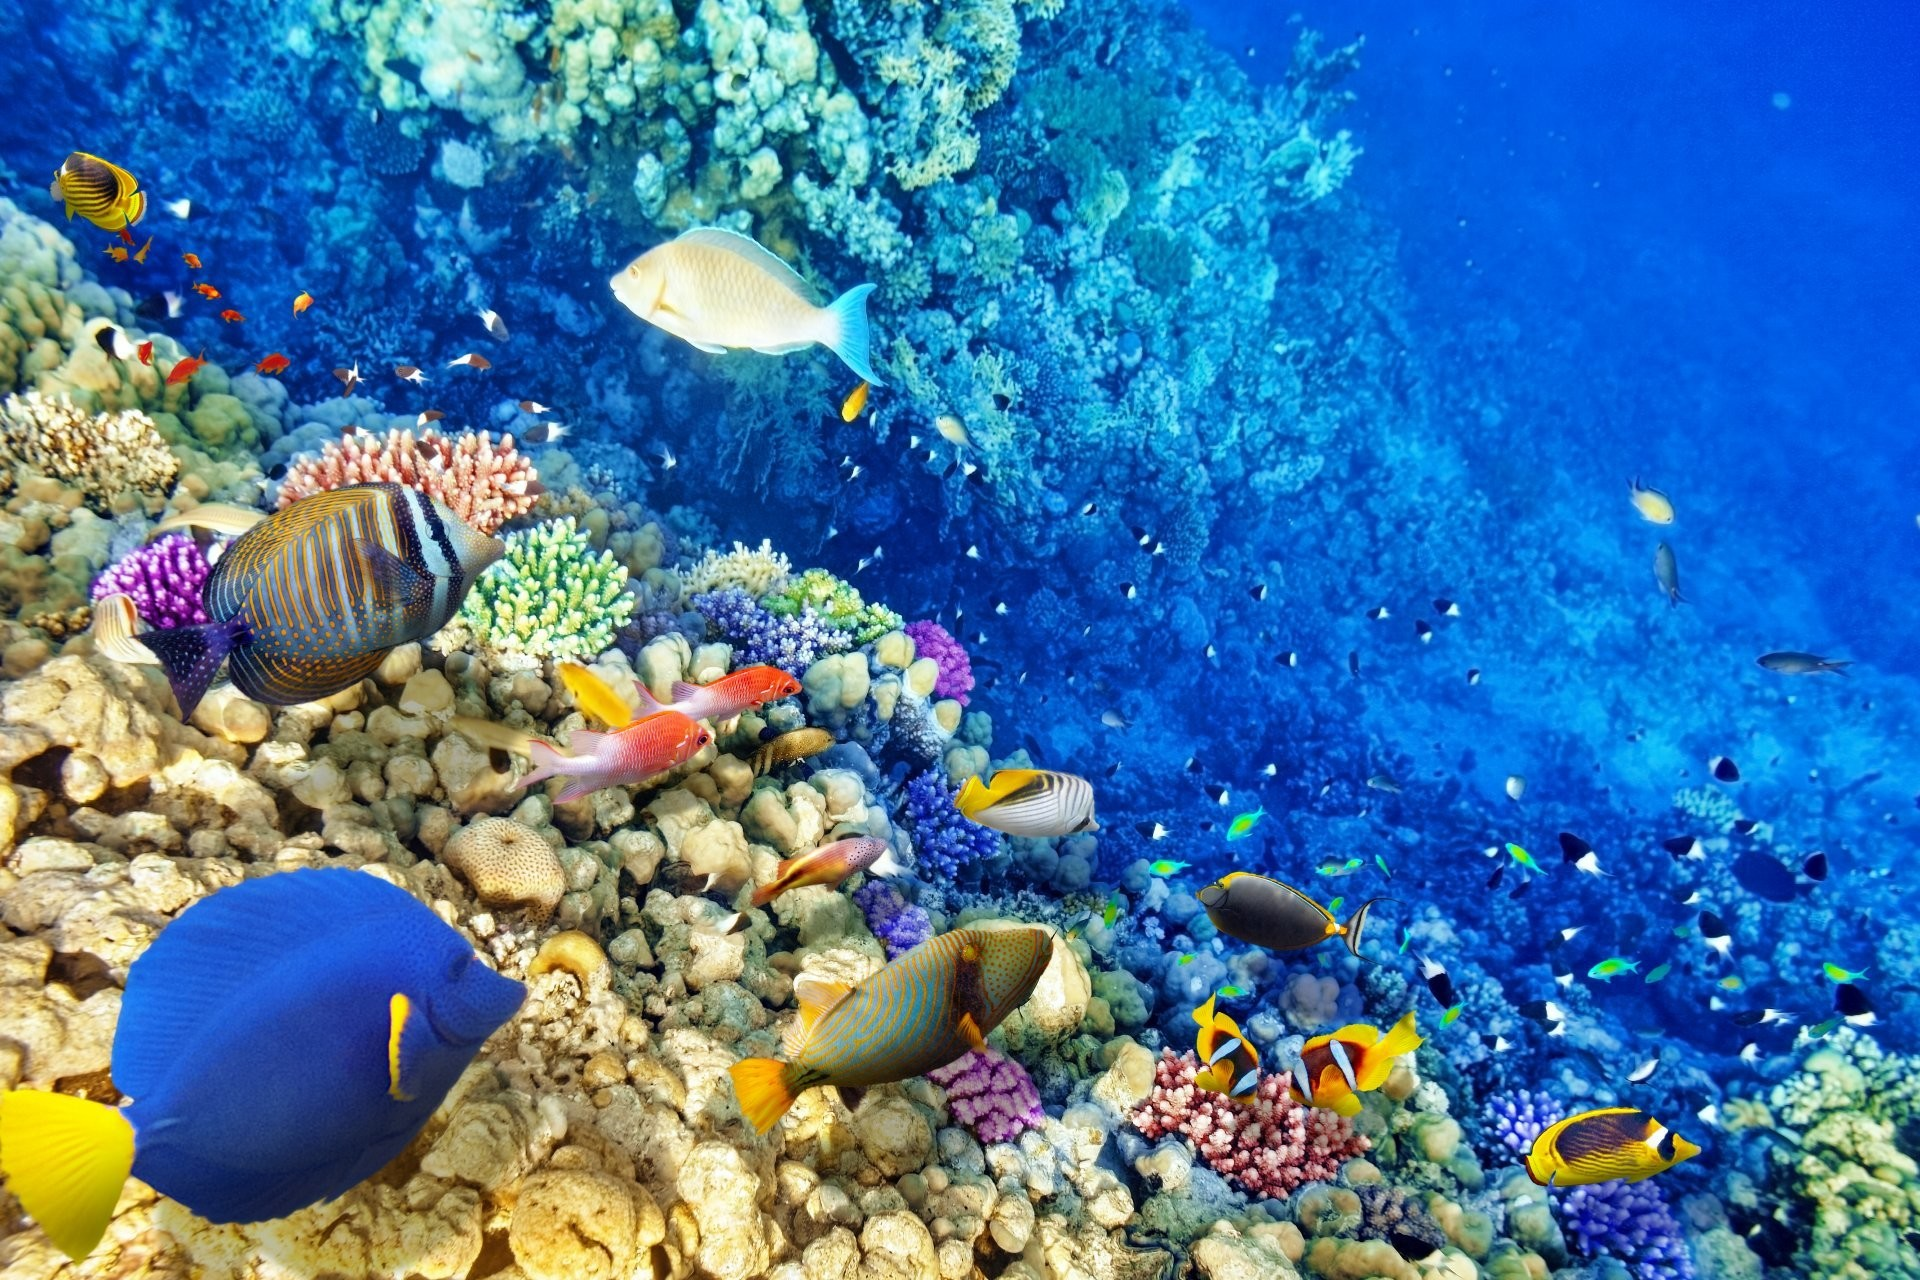 1920x1280 underwater world coral reef tropical fishes ocean underwater world fish  ocean coral reef